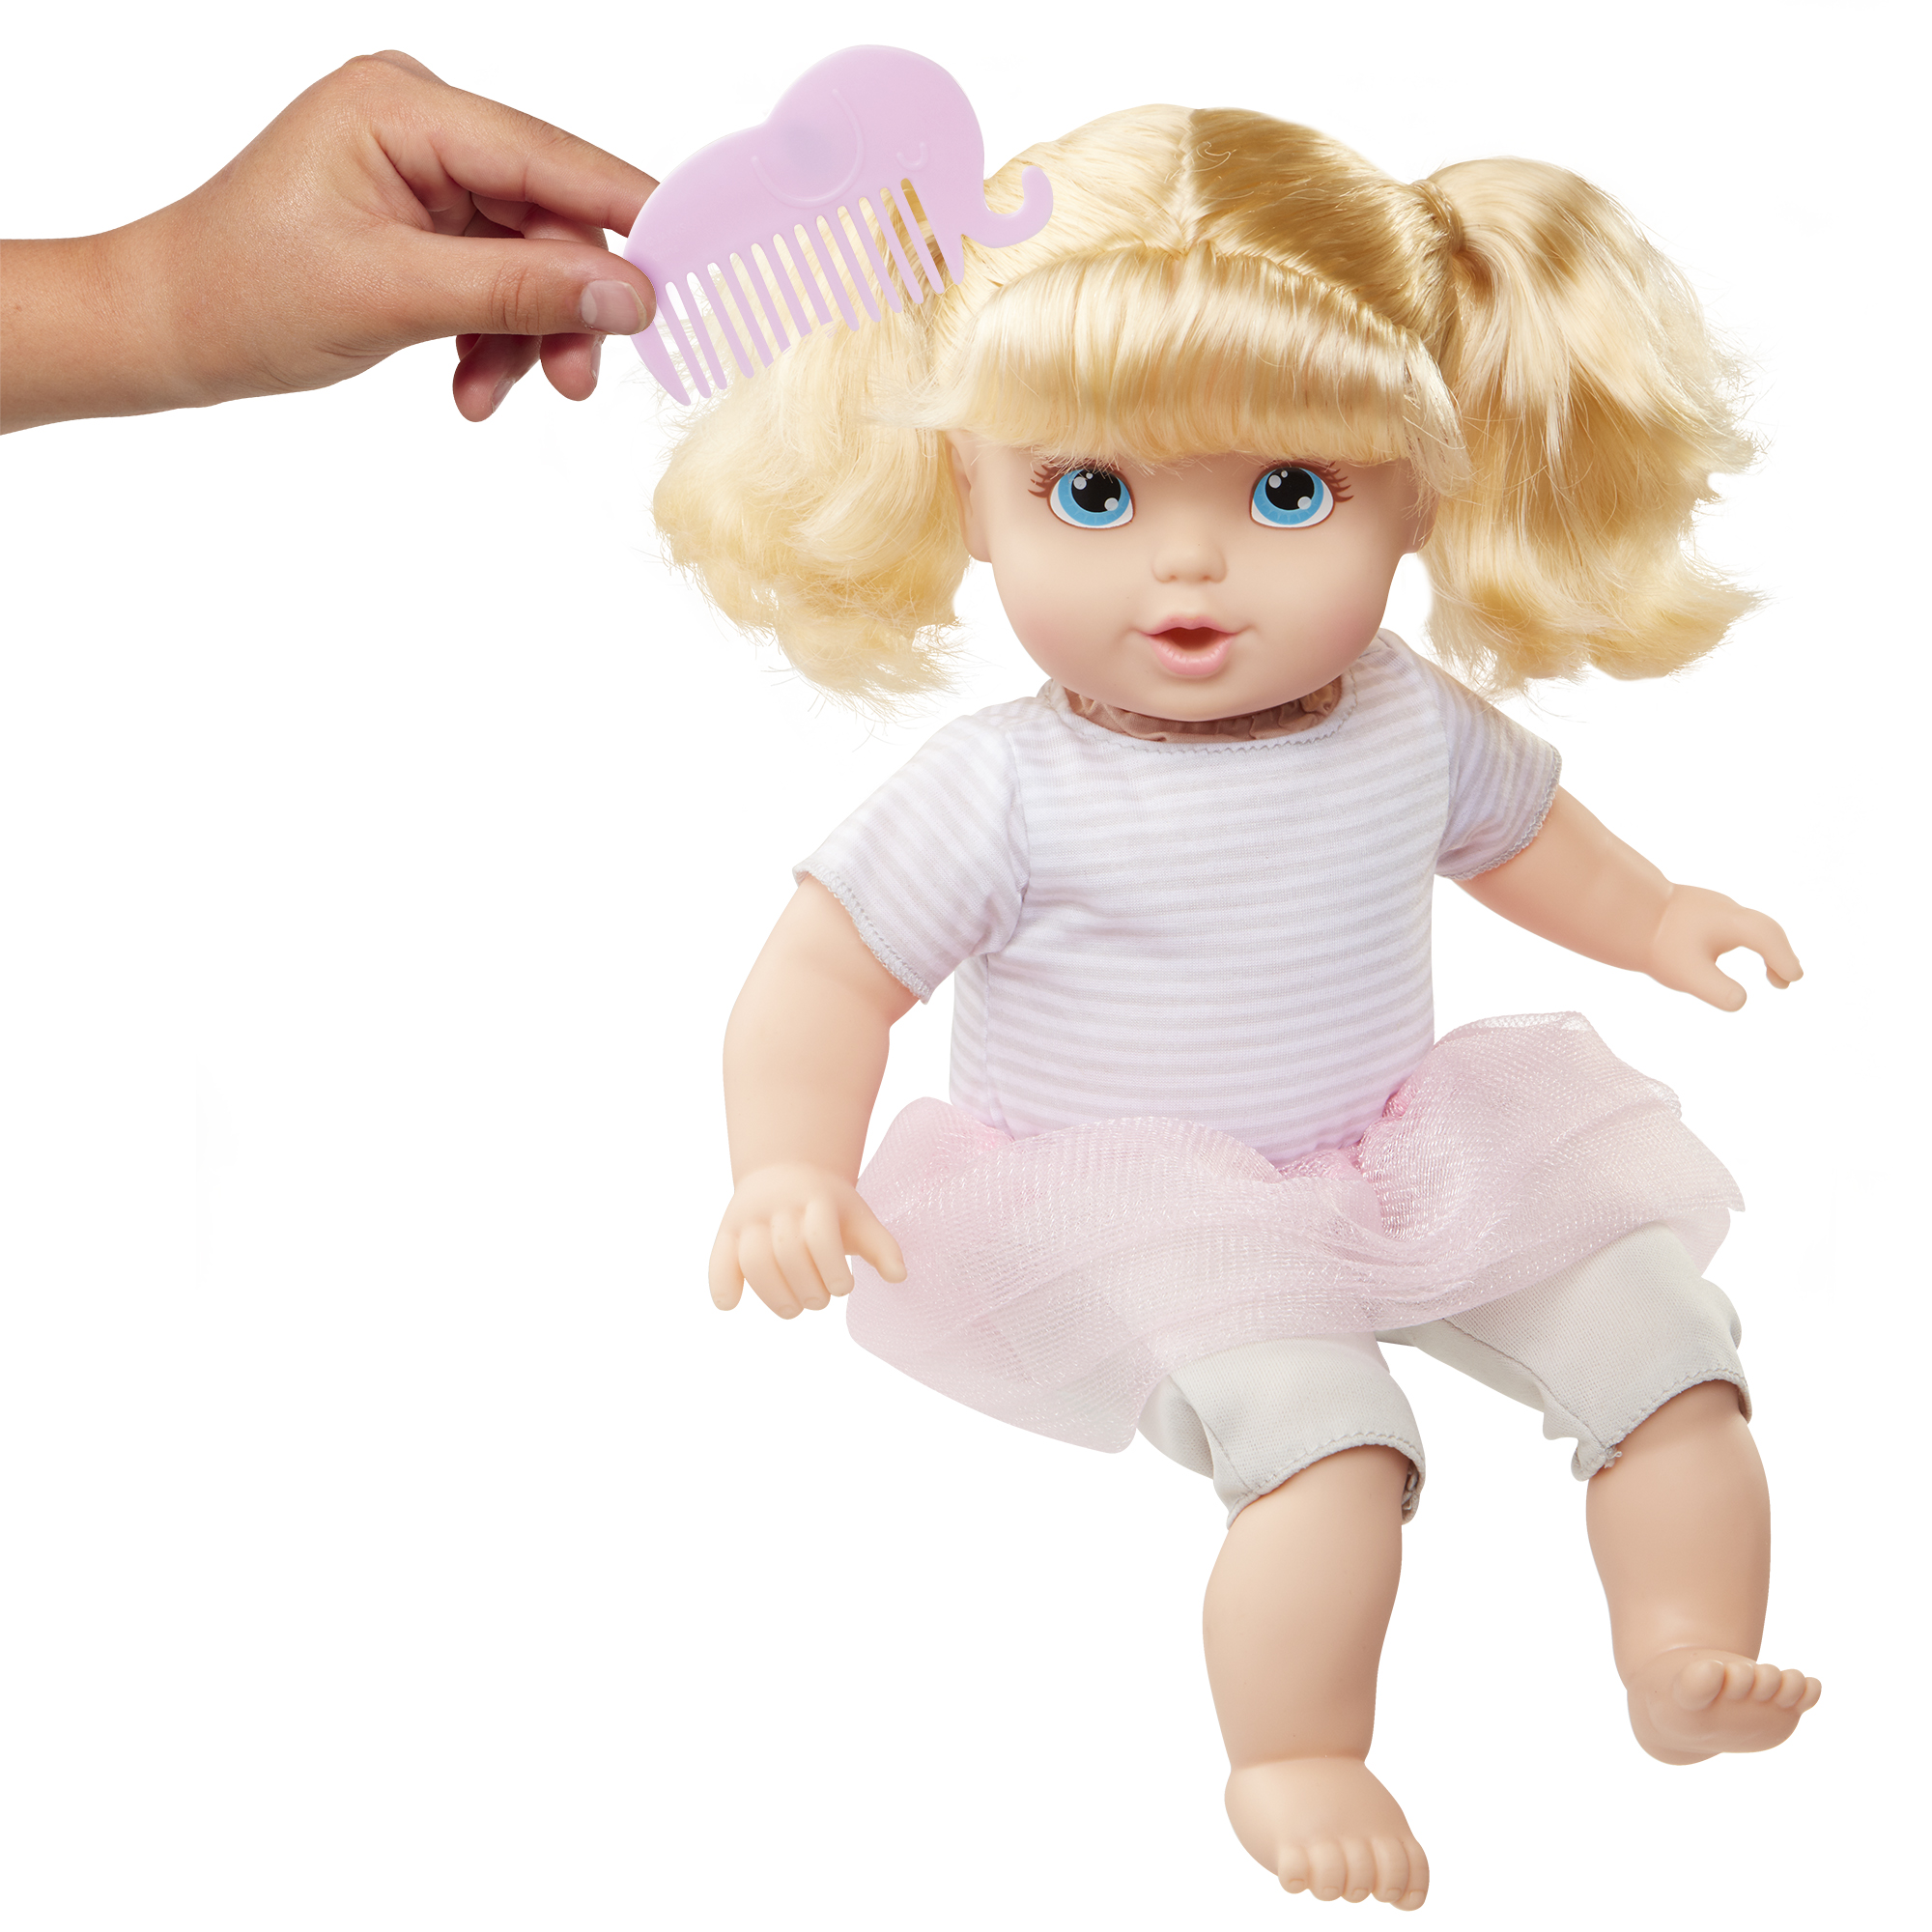 Perfectly Cute Baby 14 inch My Sweet Toddler Girl Doll